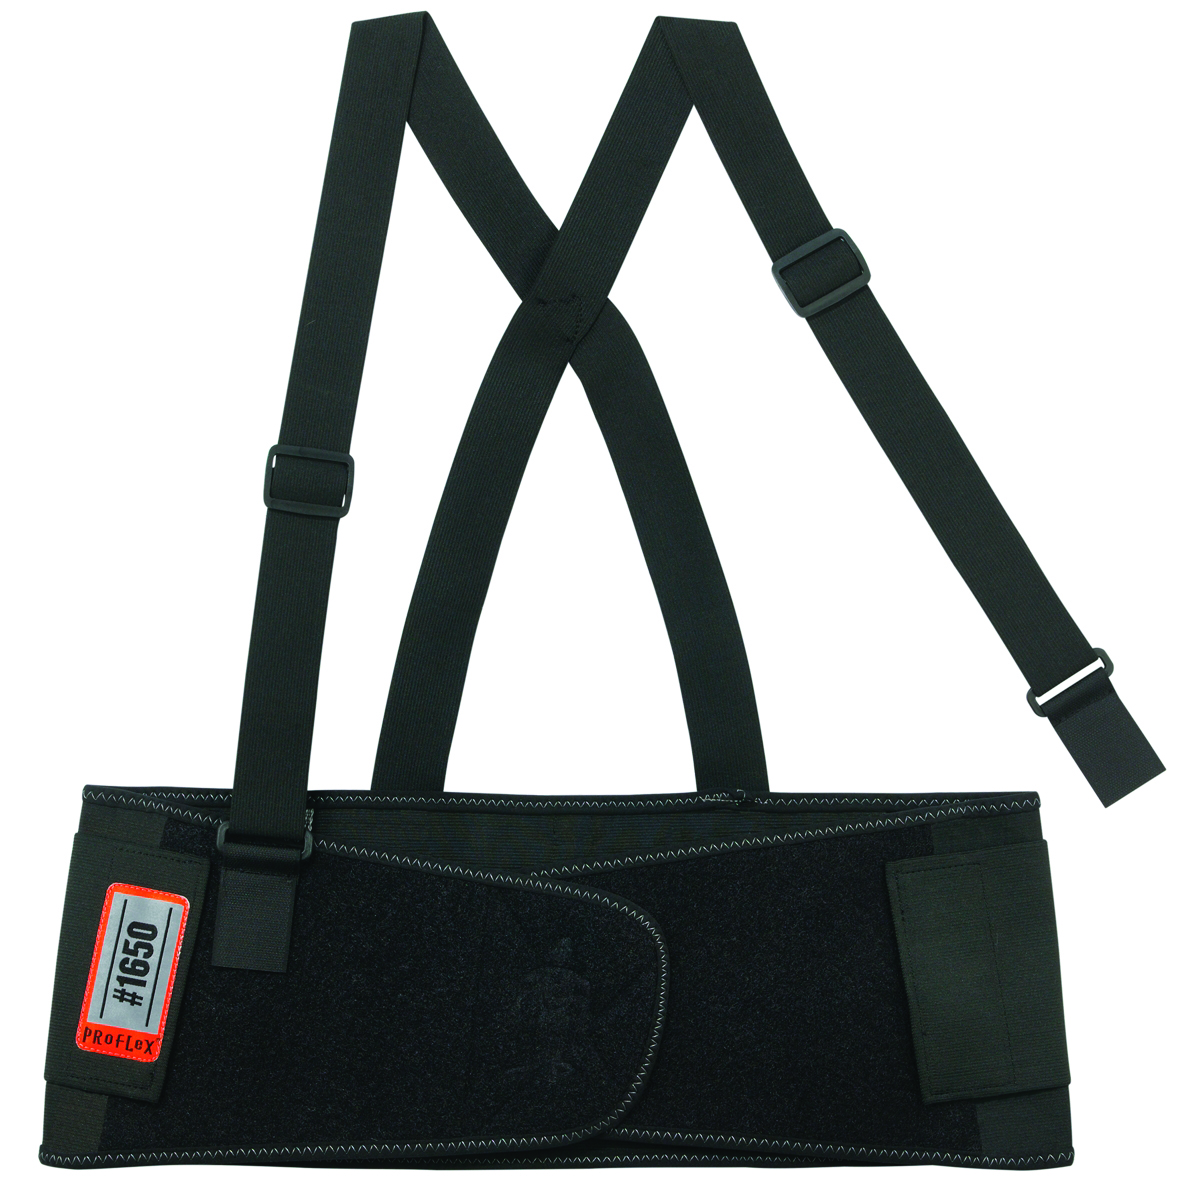 11092 - ProFlex® 1650 Economy Elastic Back Support-Small-----UOM: 1/EA